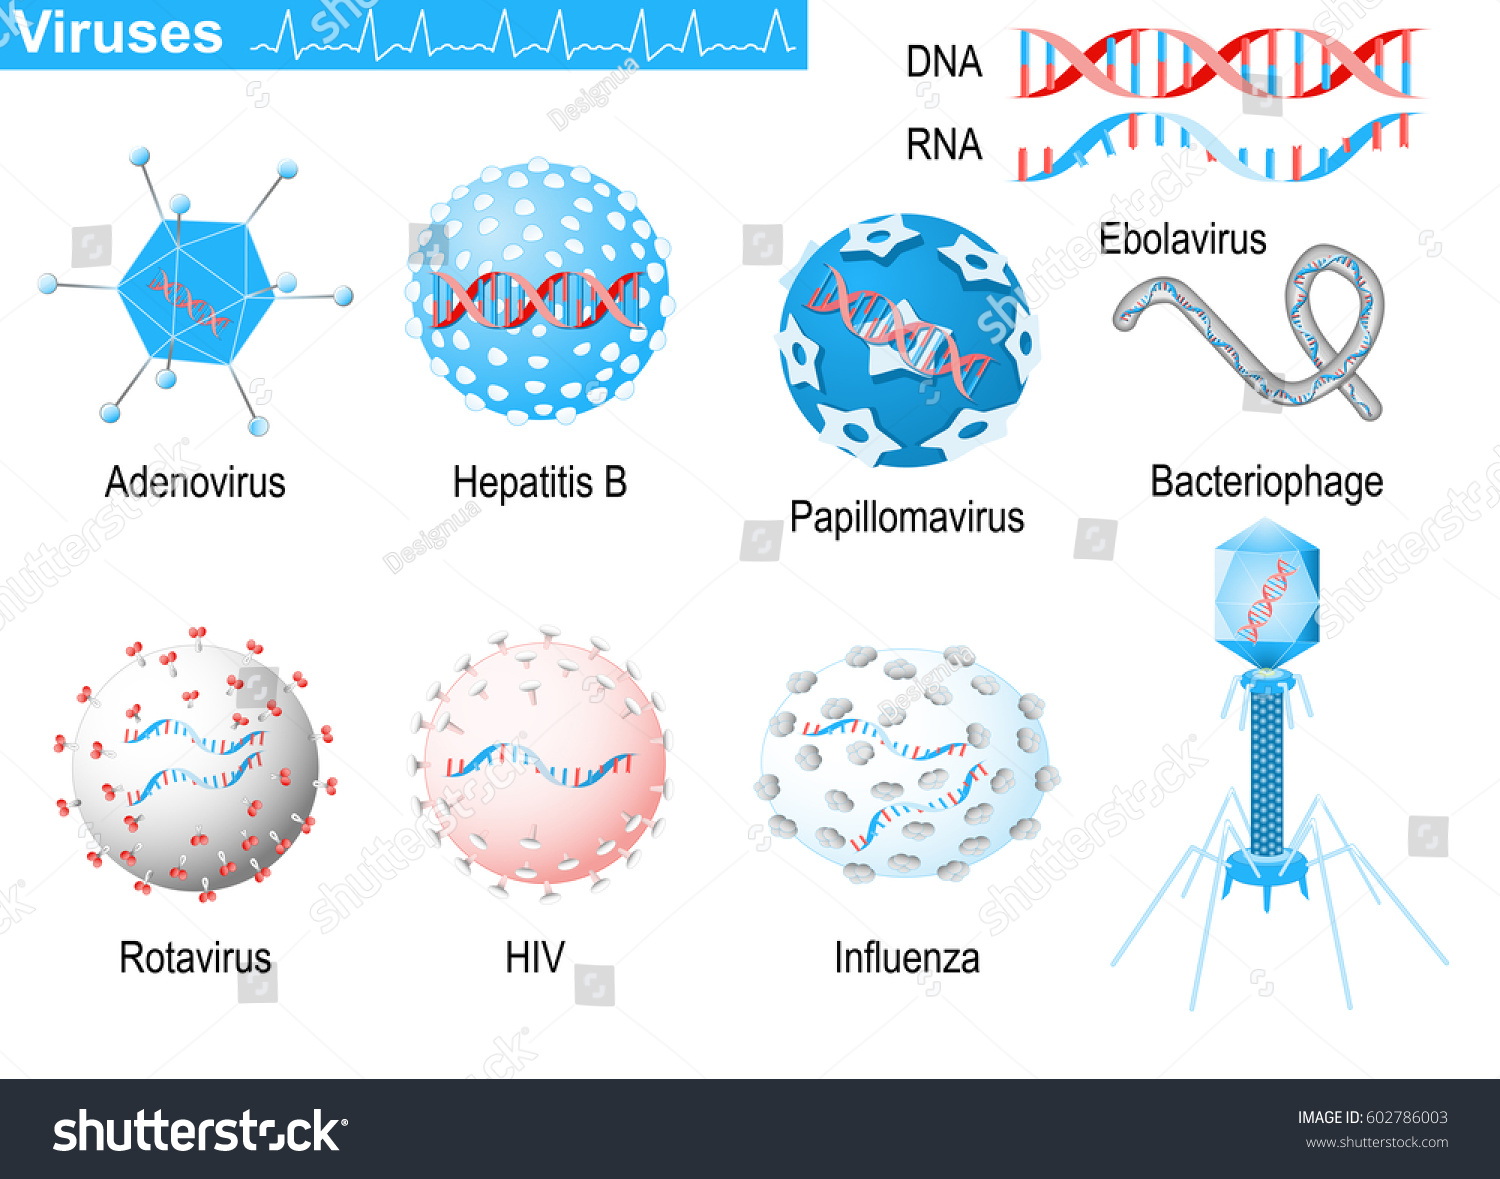 Viruses Diagram Showing Shapes Virions Bacteriophage Stock